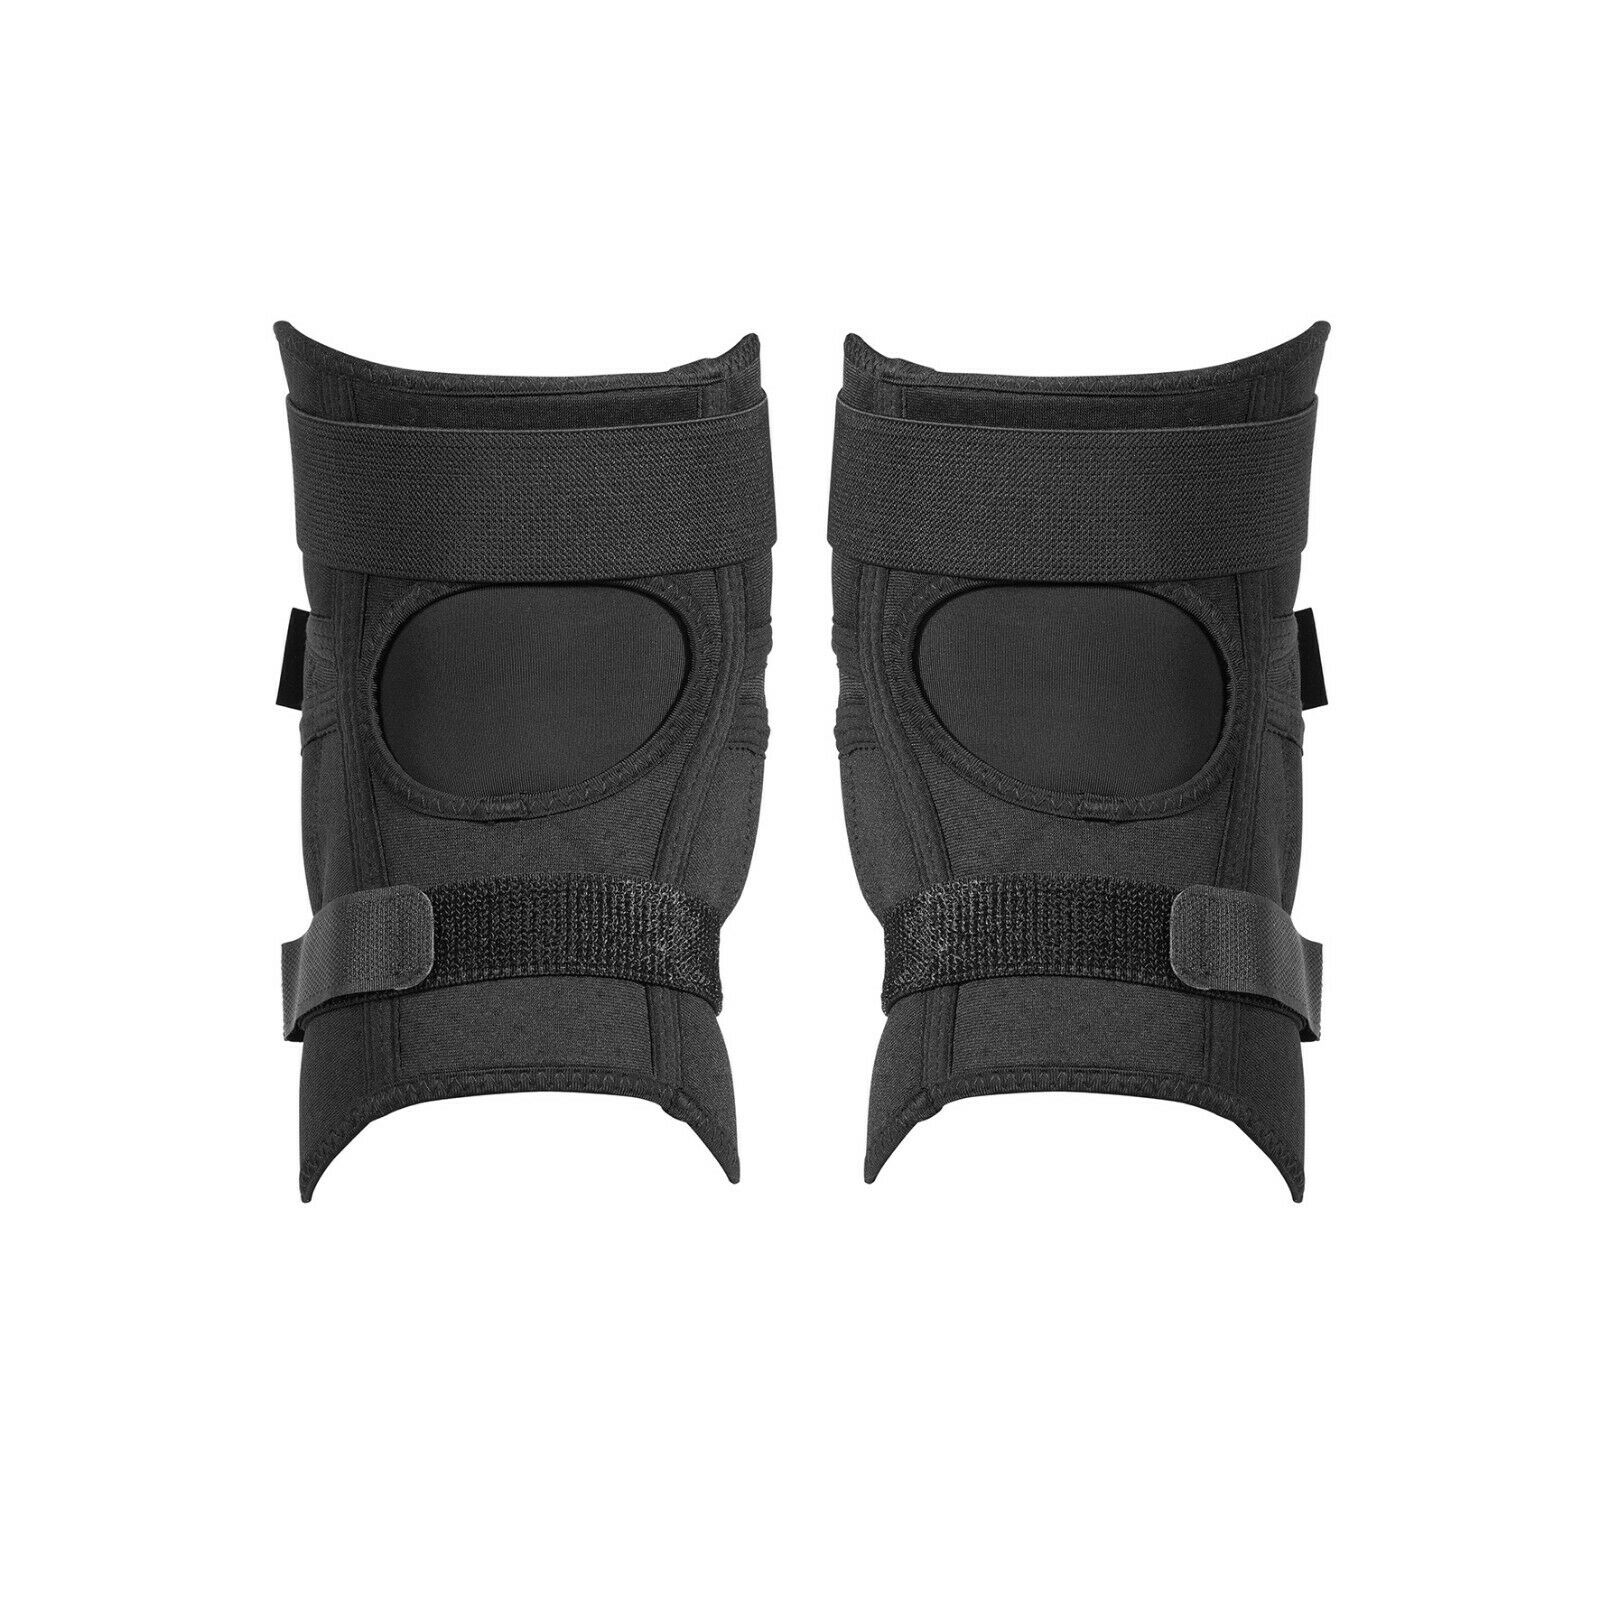 TSG Kneeguard Tahoe Cap A Black Arti-Lage Professional MTB Pads for Bicycle